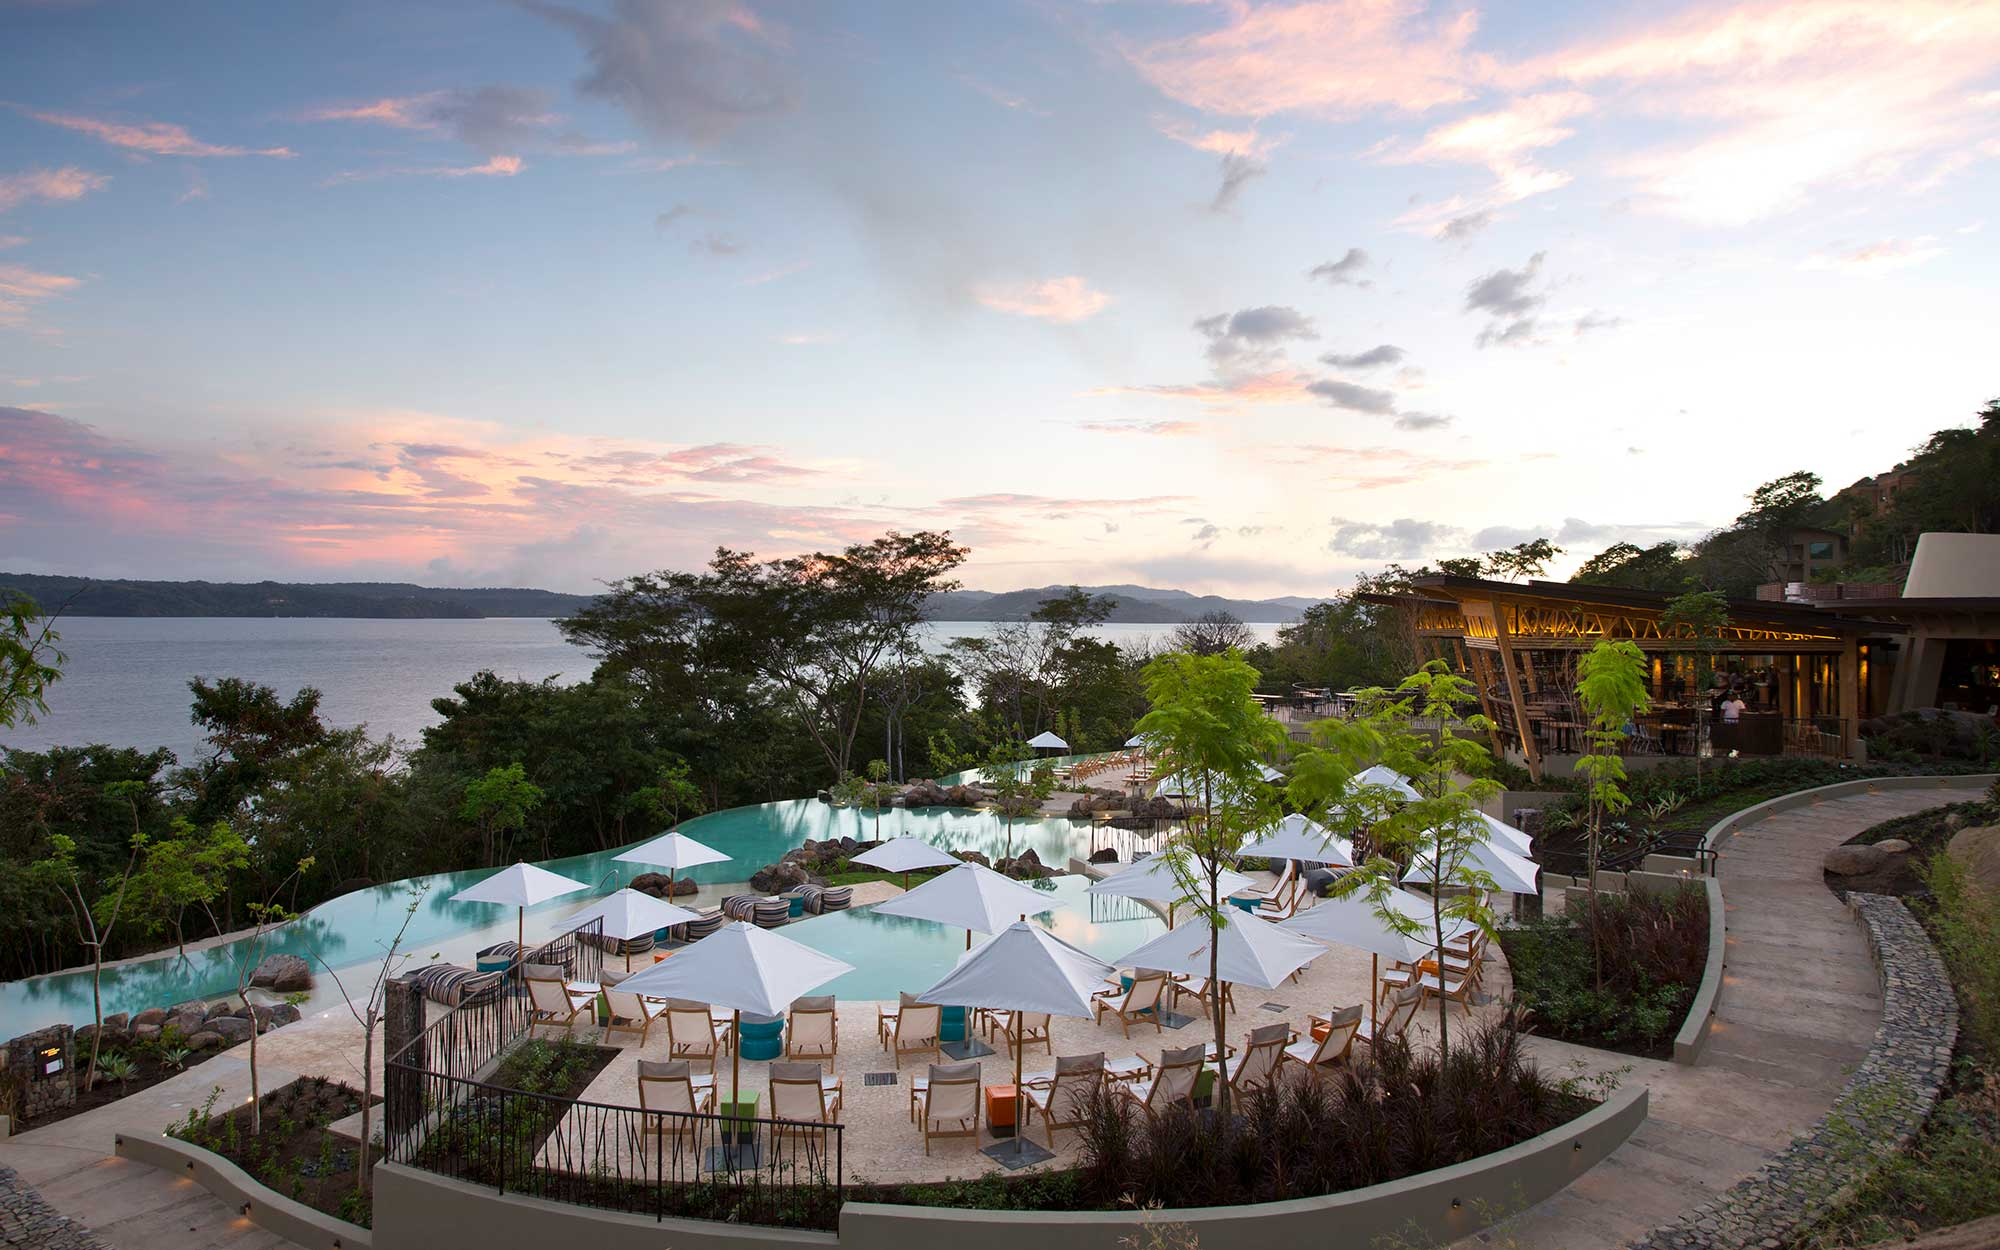 Best Romantic Summer Getaways: Guanacaste, Costa Rica